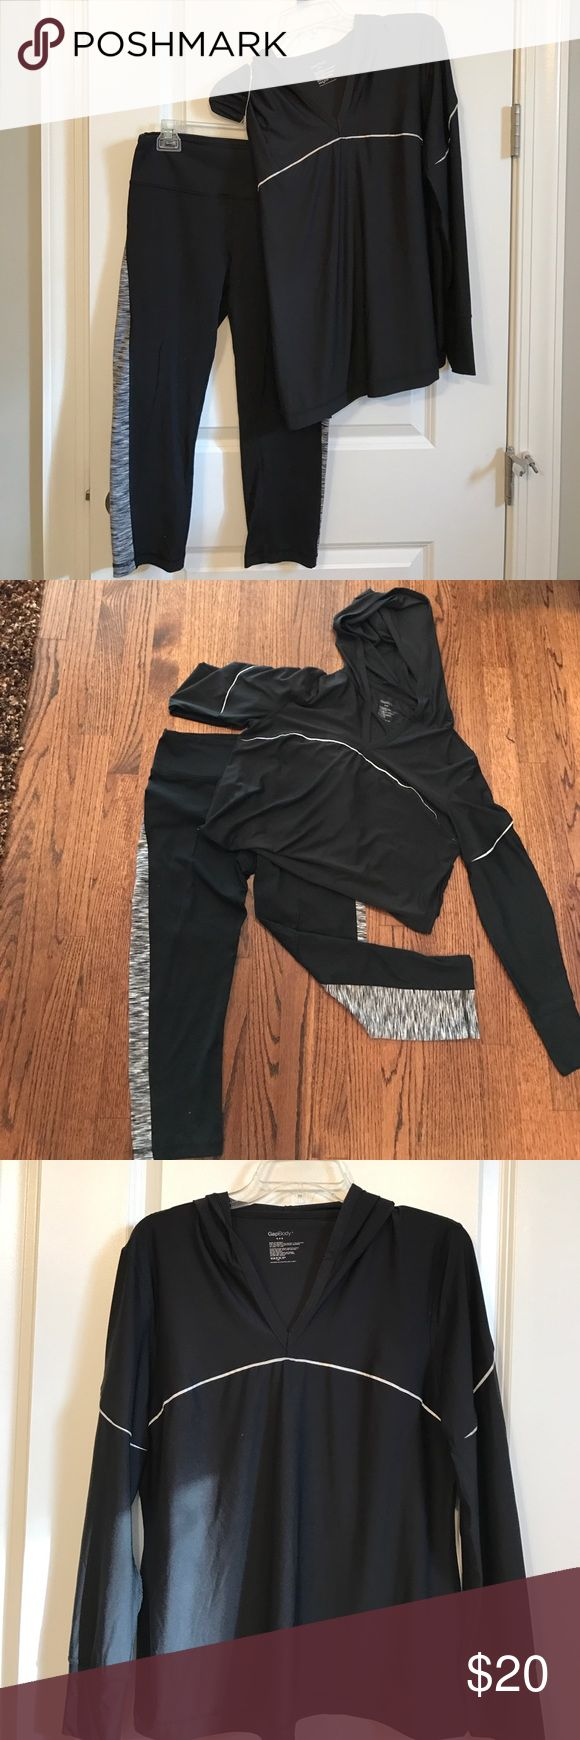 Gap Body dryfit shirt and 90 degrees workout pants NWOT Gap Body Long Sleeve Shirt with hood.  Black, Size L.  Extremely light weight so perfect over any workout tank!   Black and white workout pants that go past the knees, size M.                                                  Can be sold separately, just make me an offer! Pants Track Pants & Joggers